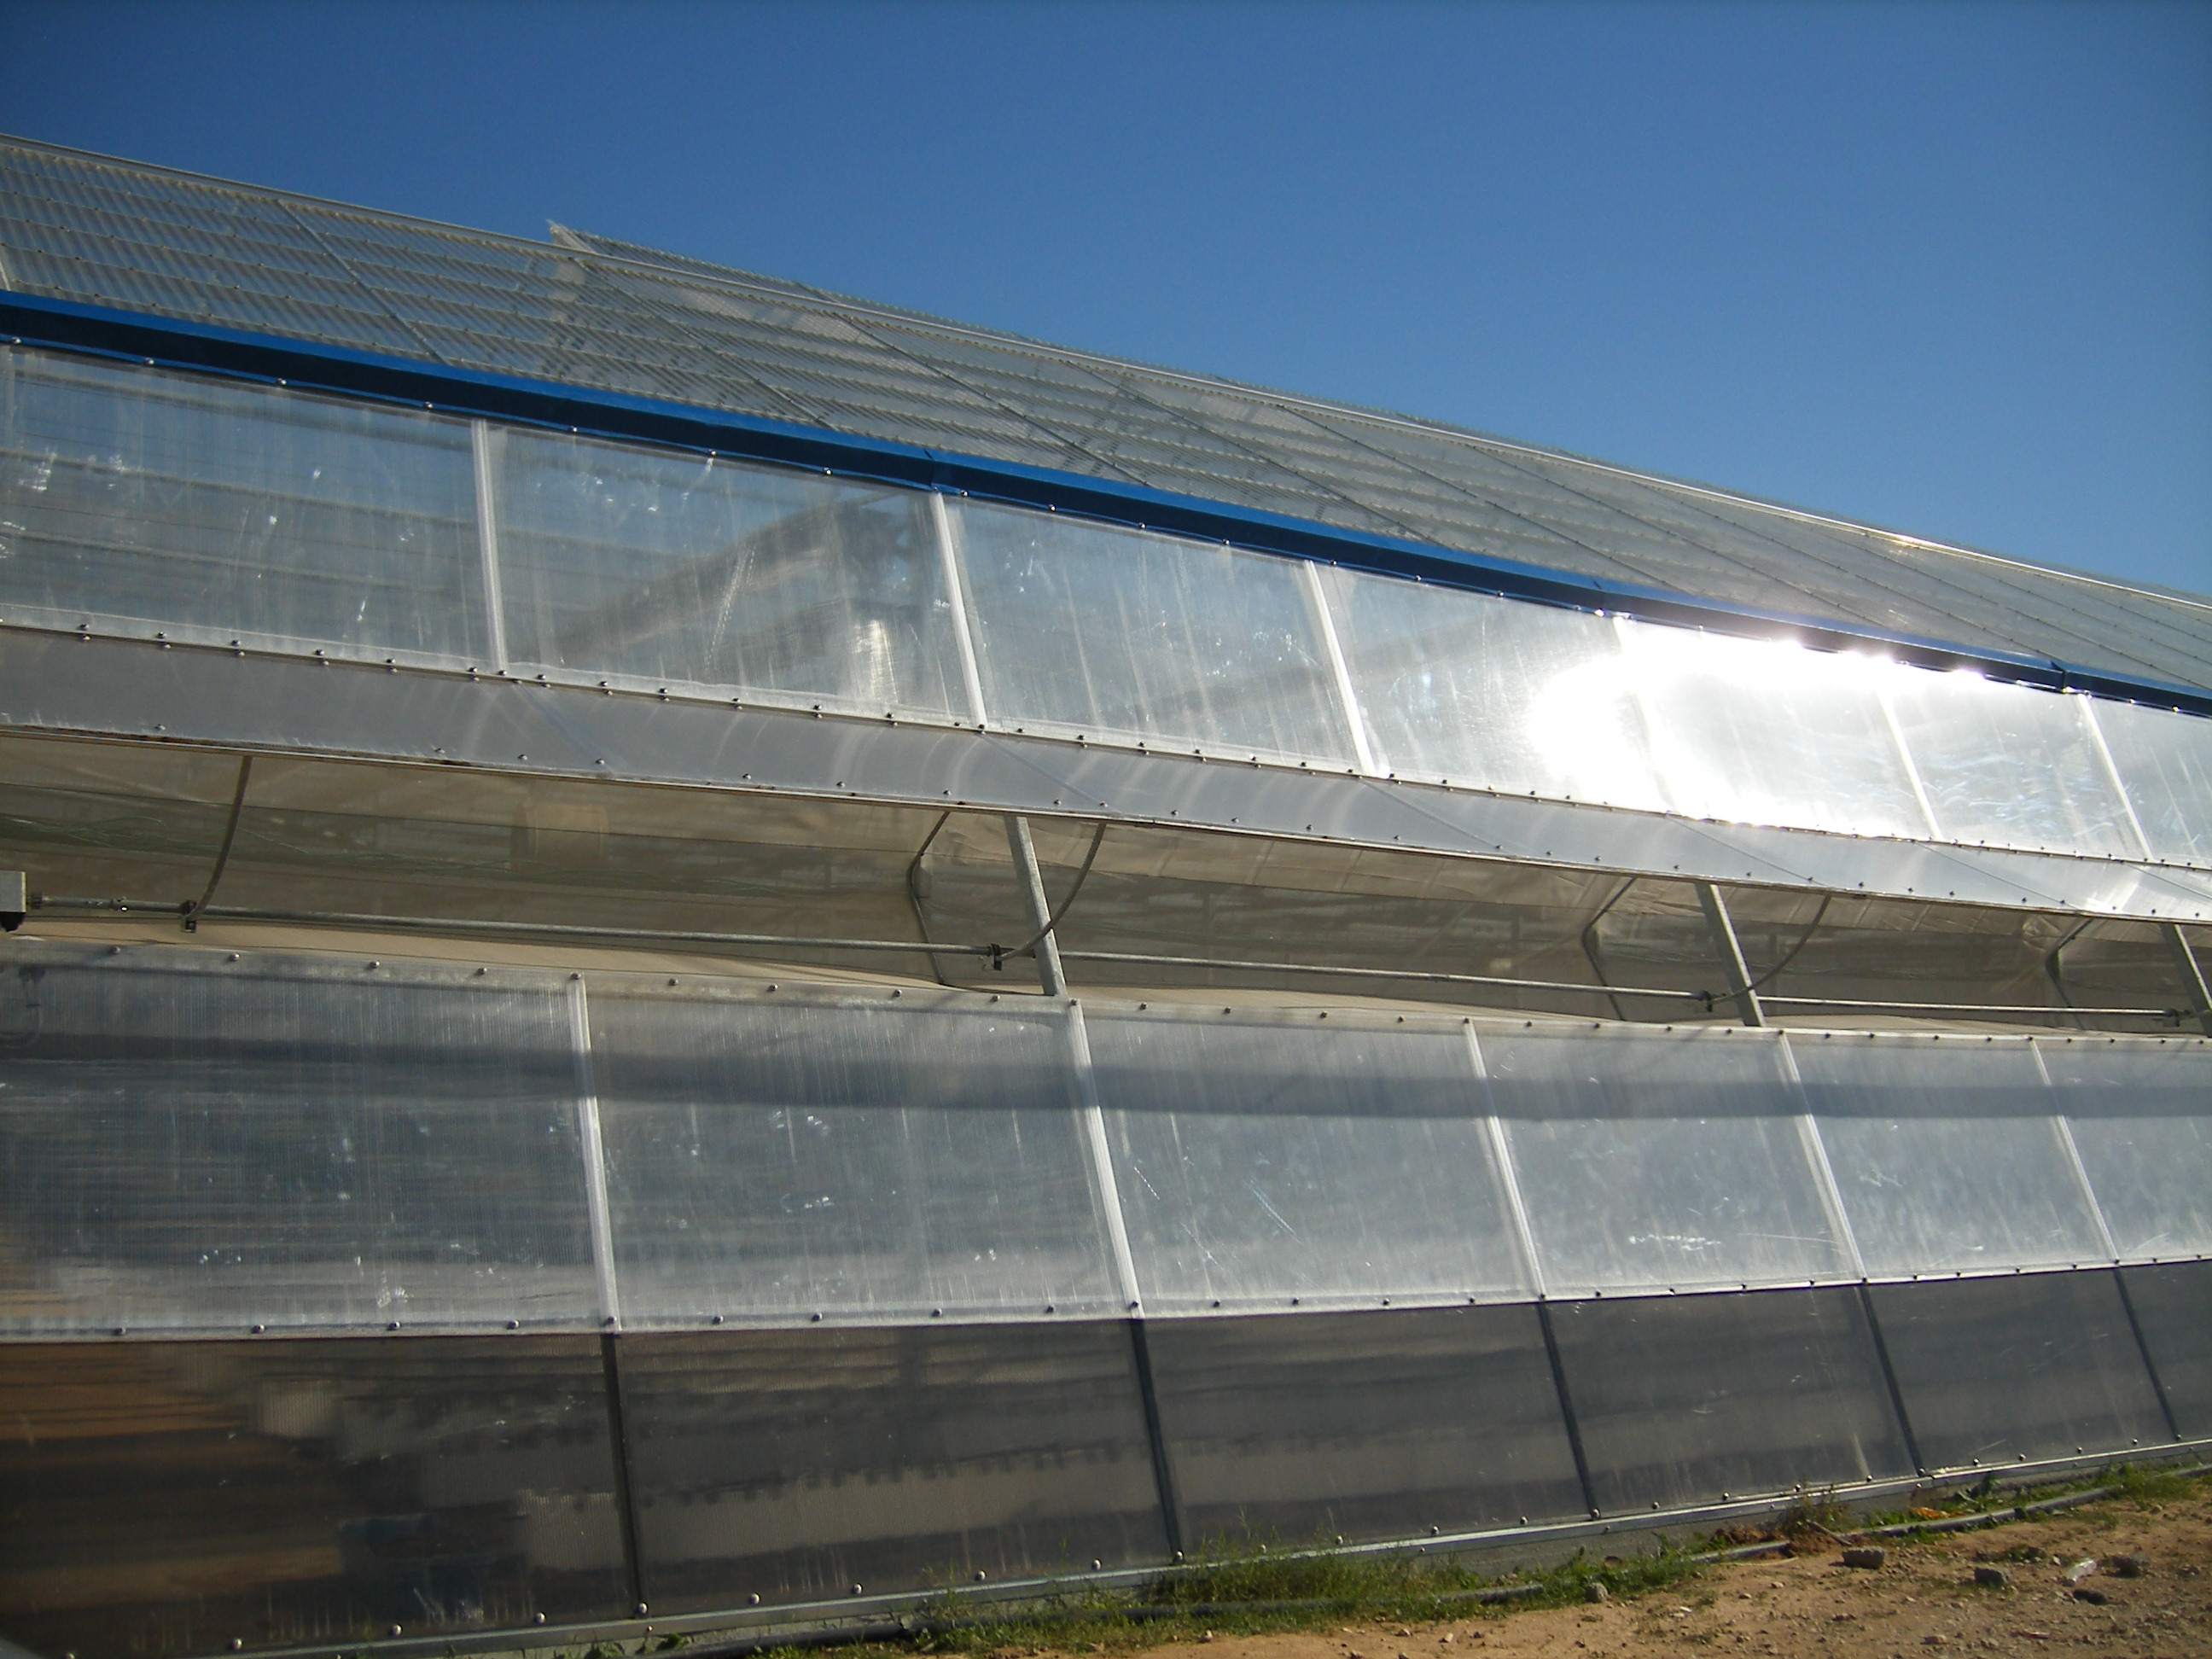 Smartfarming greenhouse with polycarbonate covering (4)